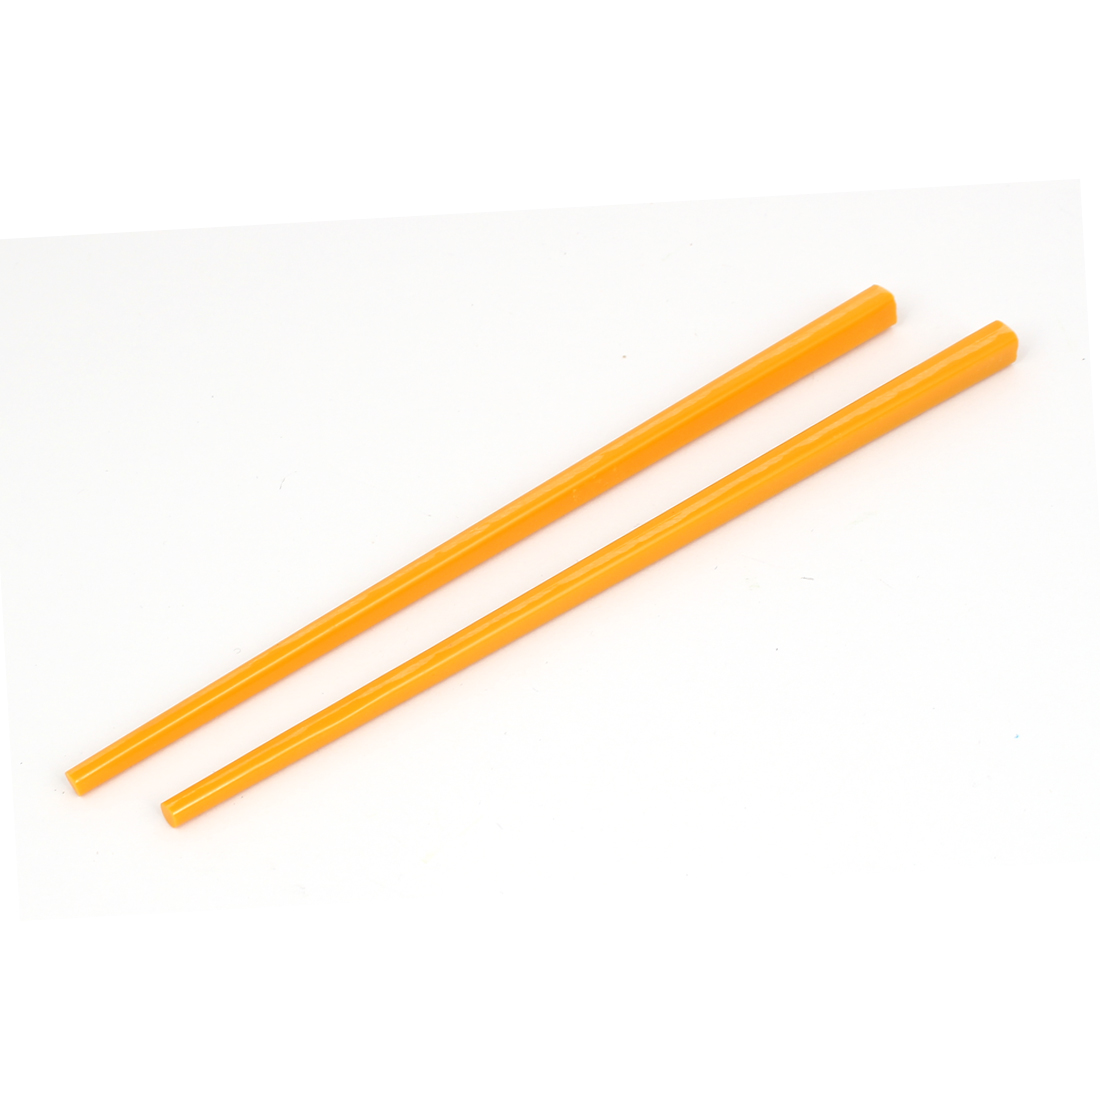 "2 Pcs Orange Plastic 6.9"" Long Chopsticks for Children"